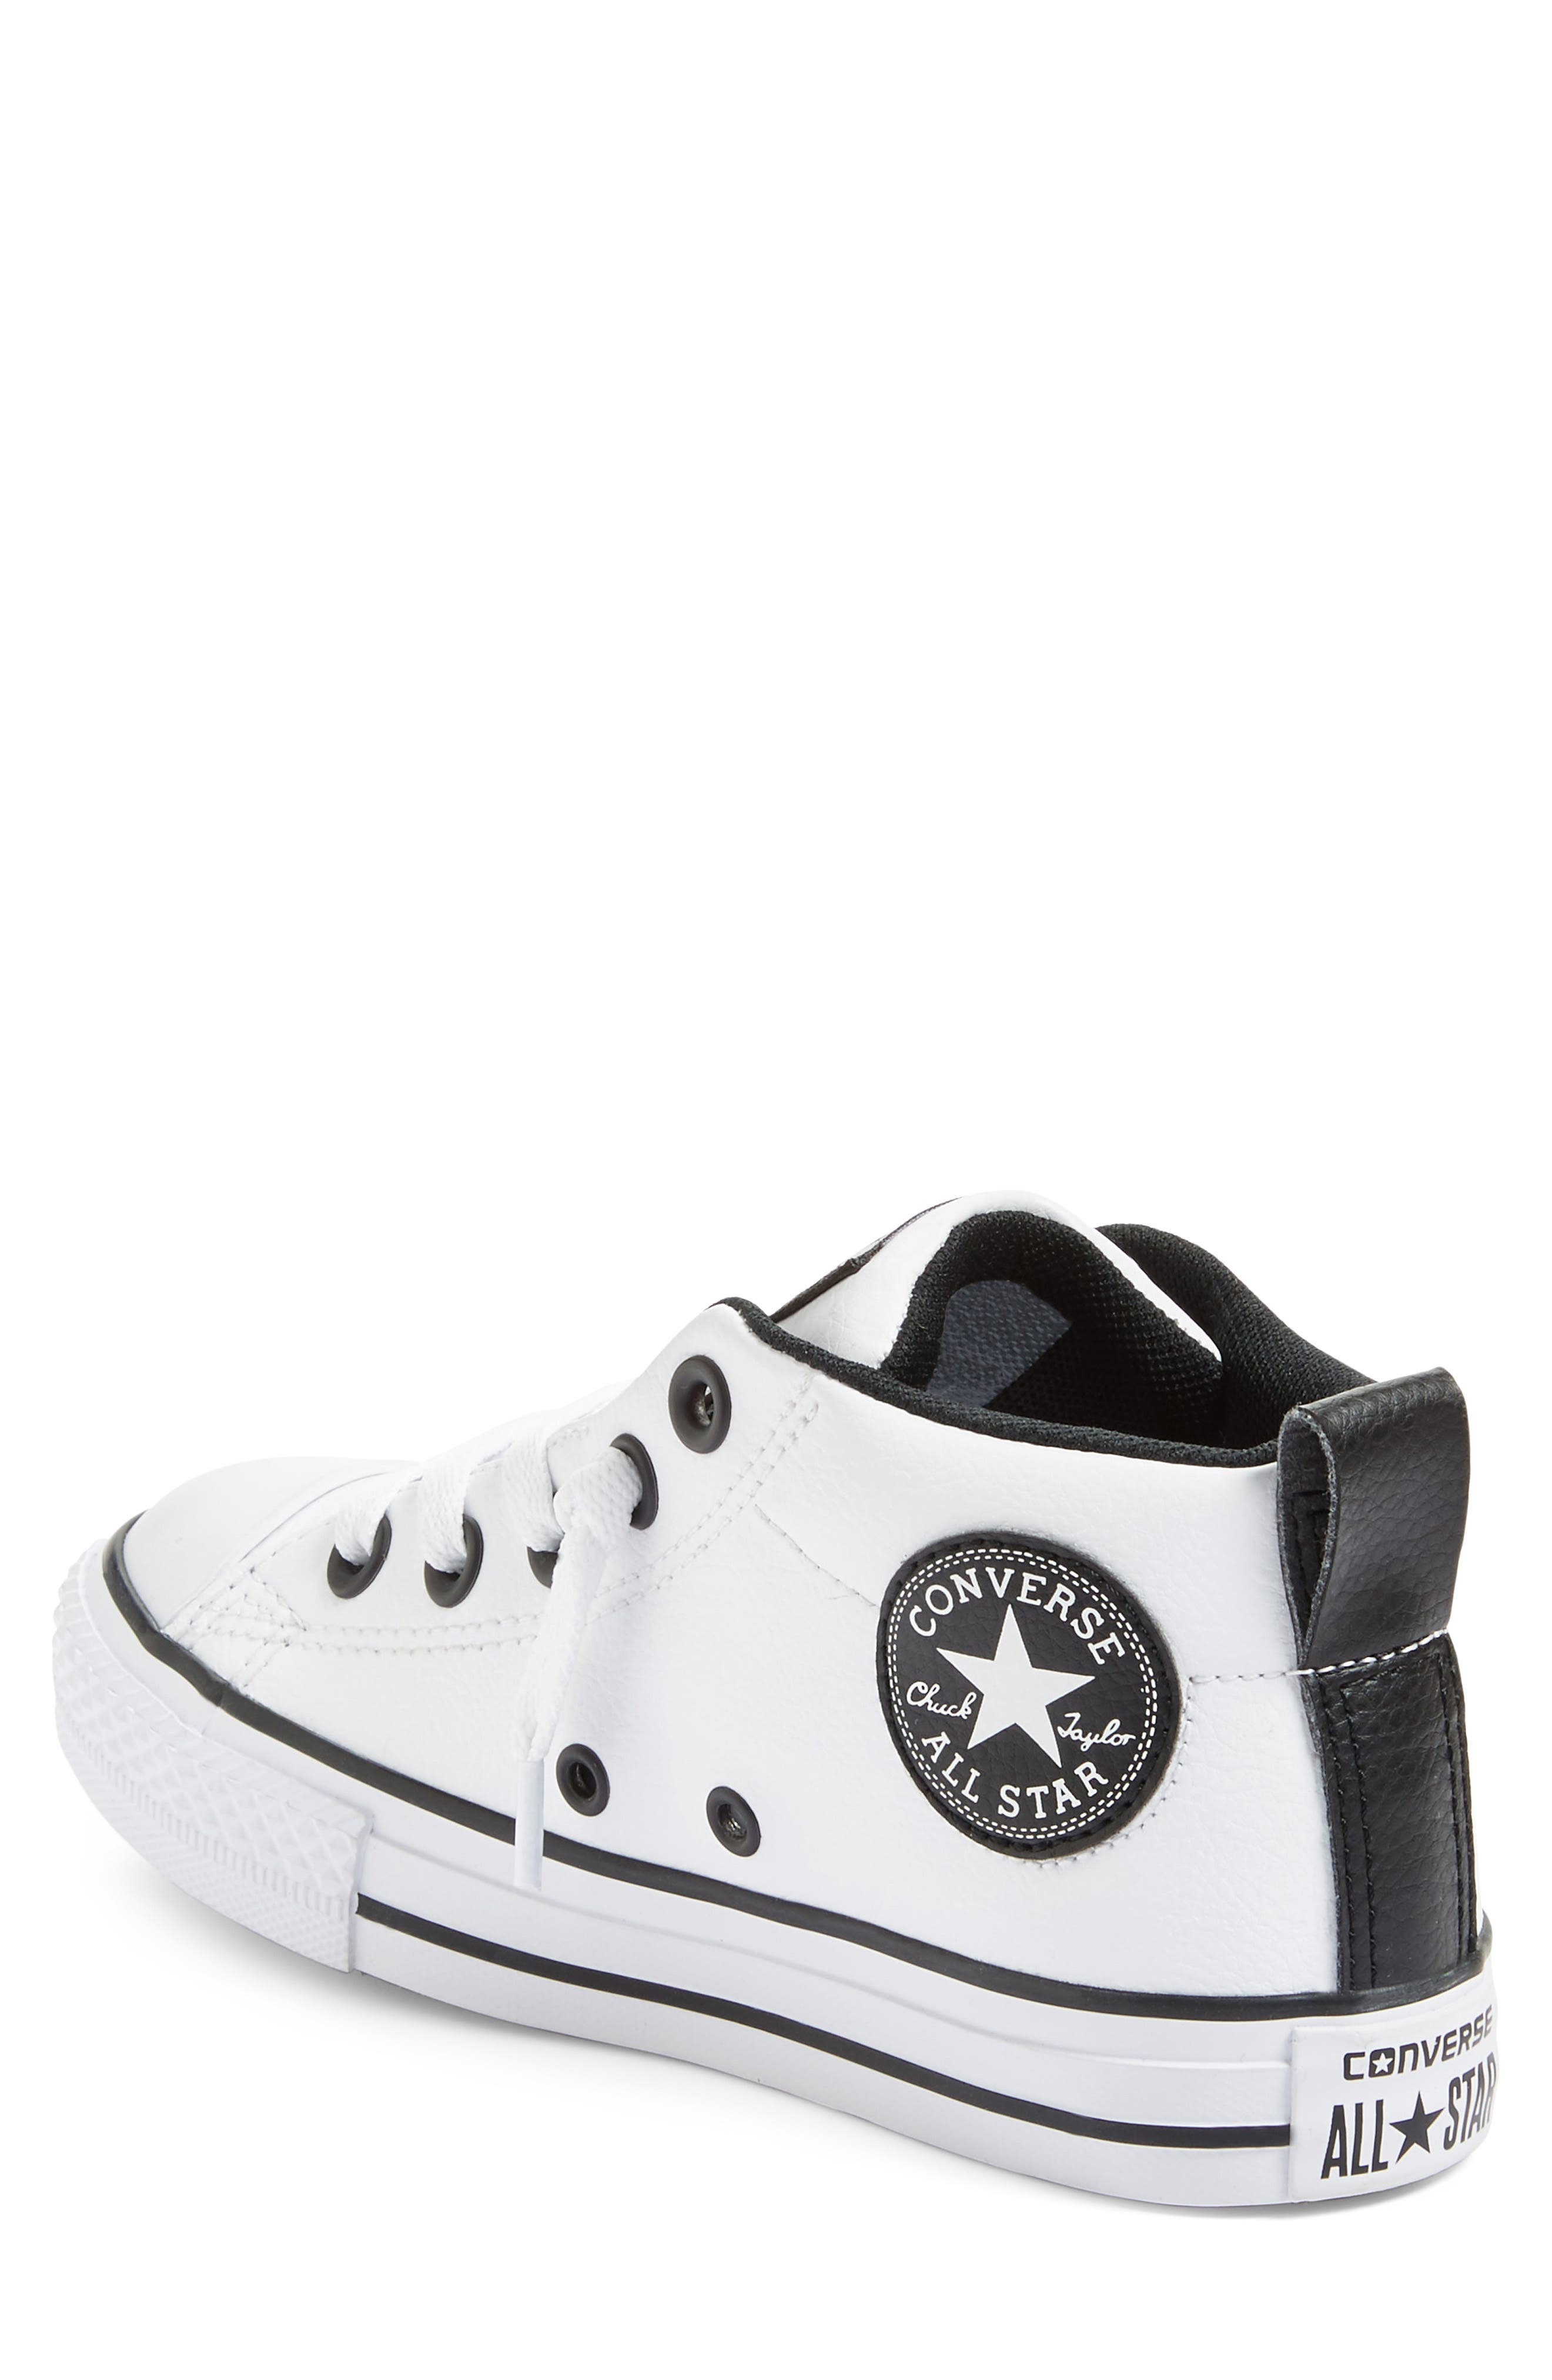 Chuck Taylor<sup>®</sup> All Star<sup>®</sup> Mid High Sneaker,                             Alternate thumbnail 2, color,                             102